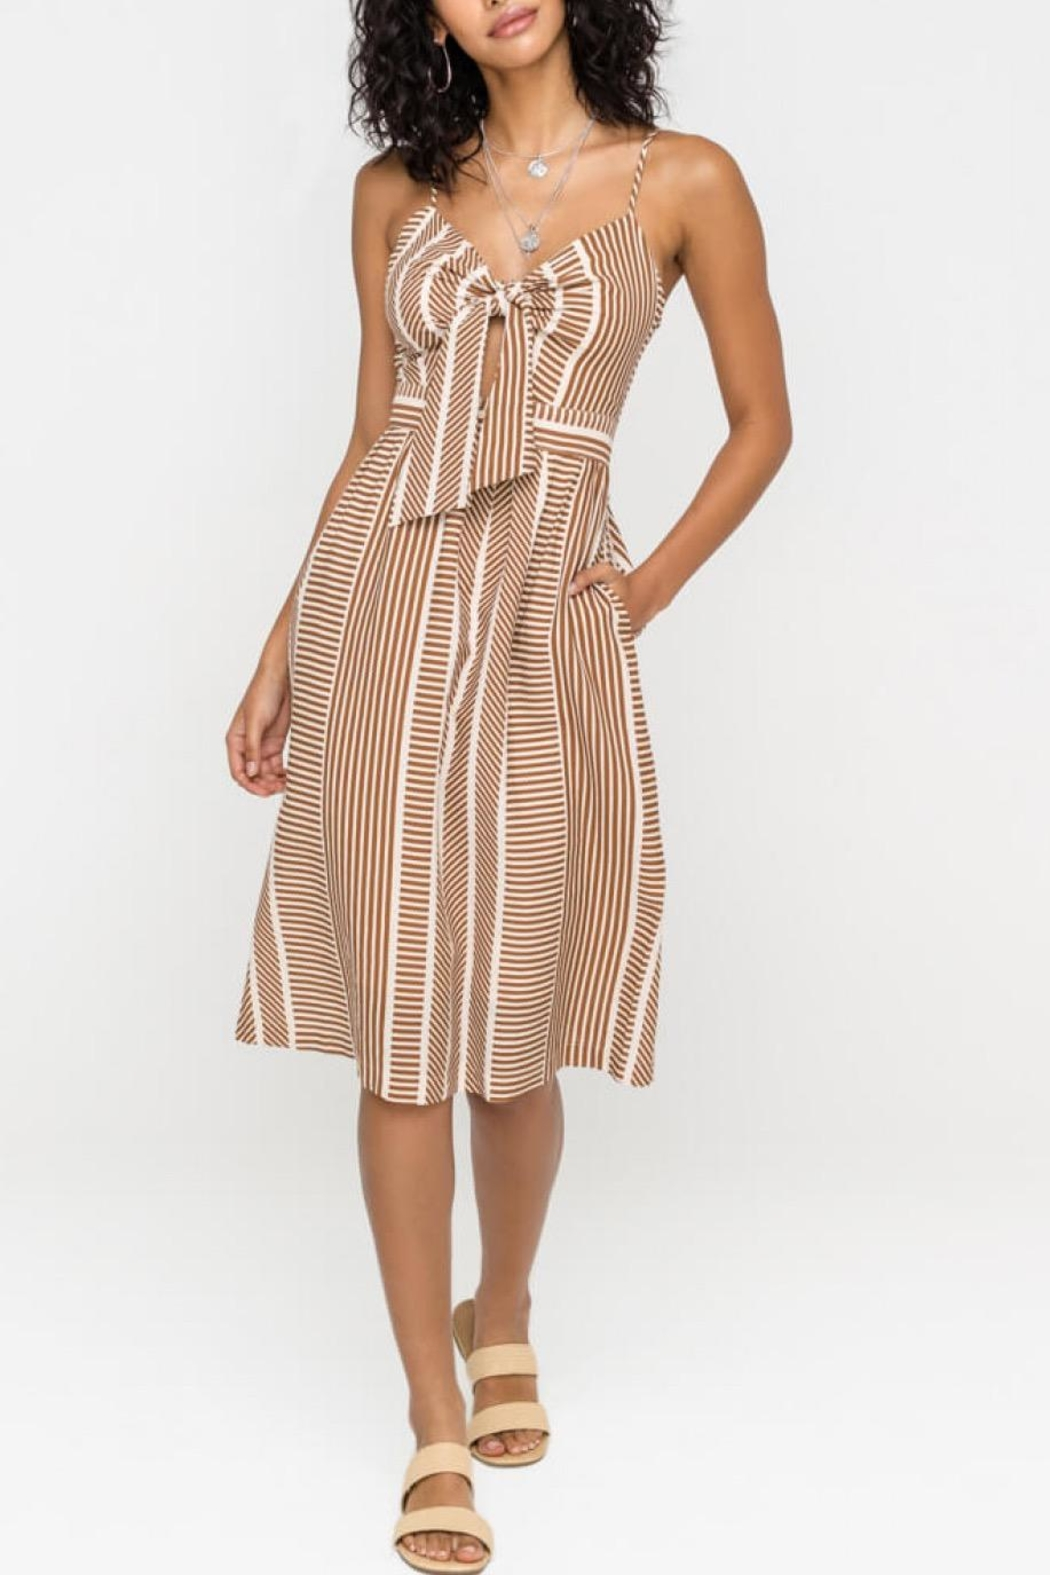 Lush Clothing  Front-Tie Midi Dress - Front Cropped Image